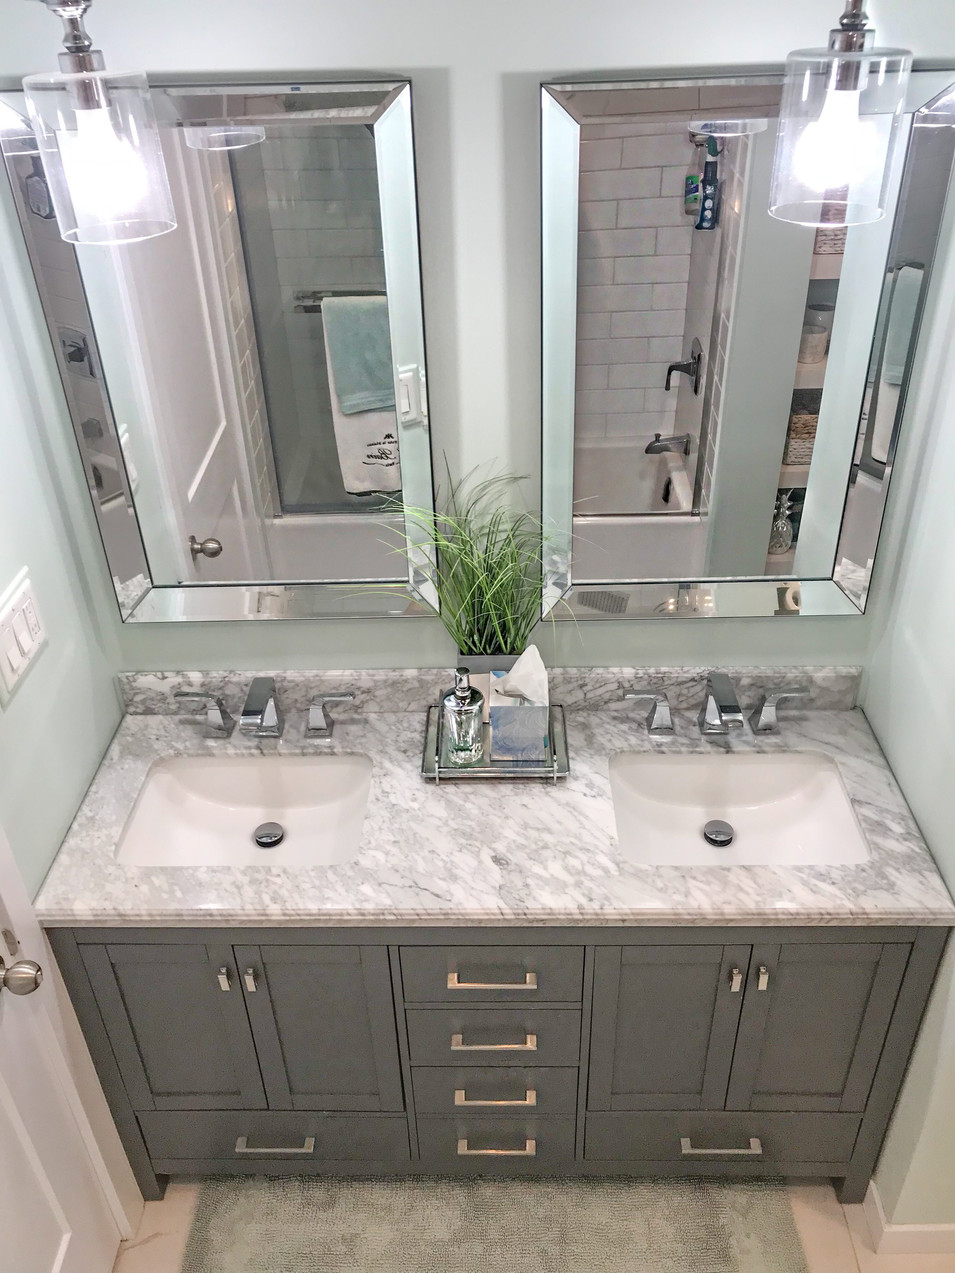 Mirrors, lighting and accessories.